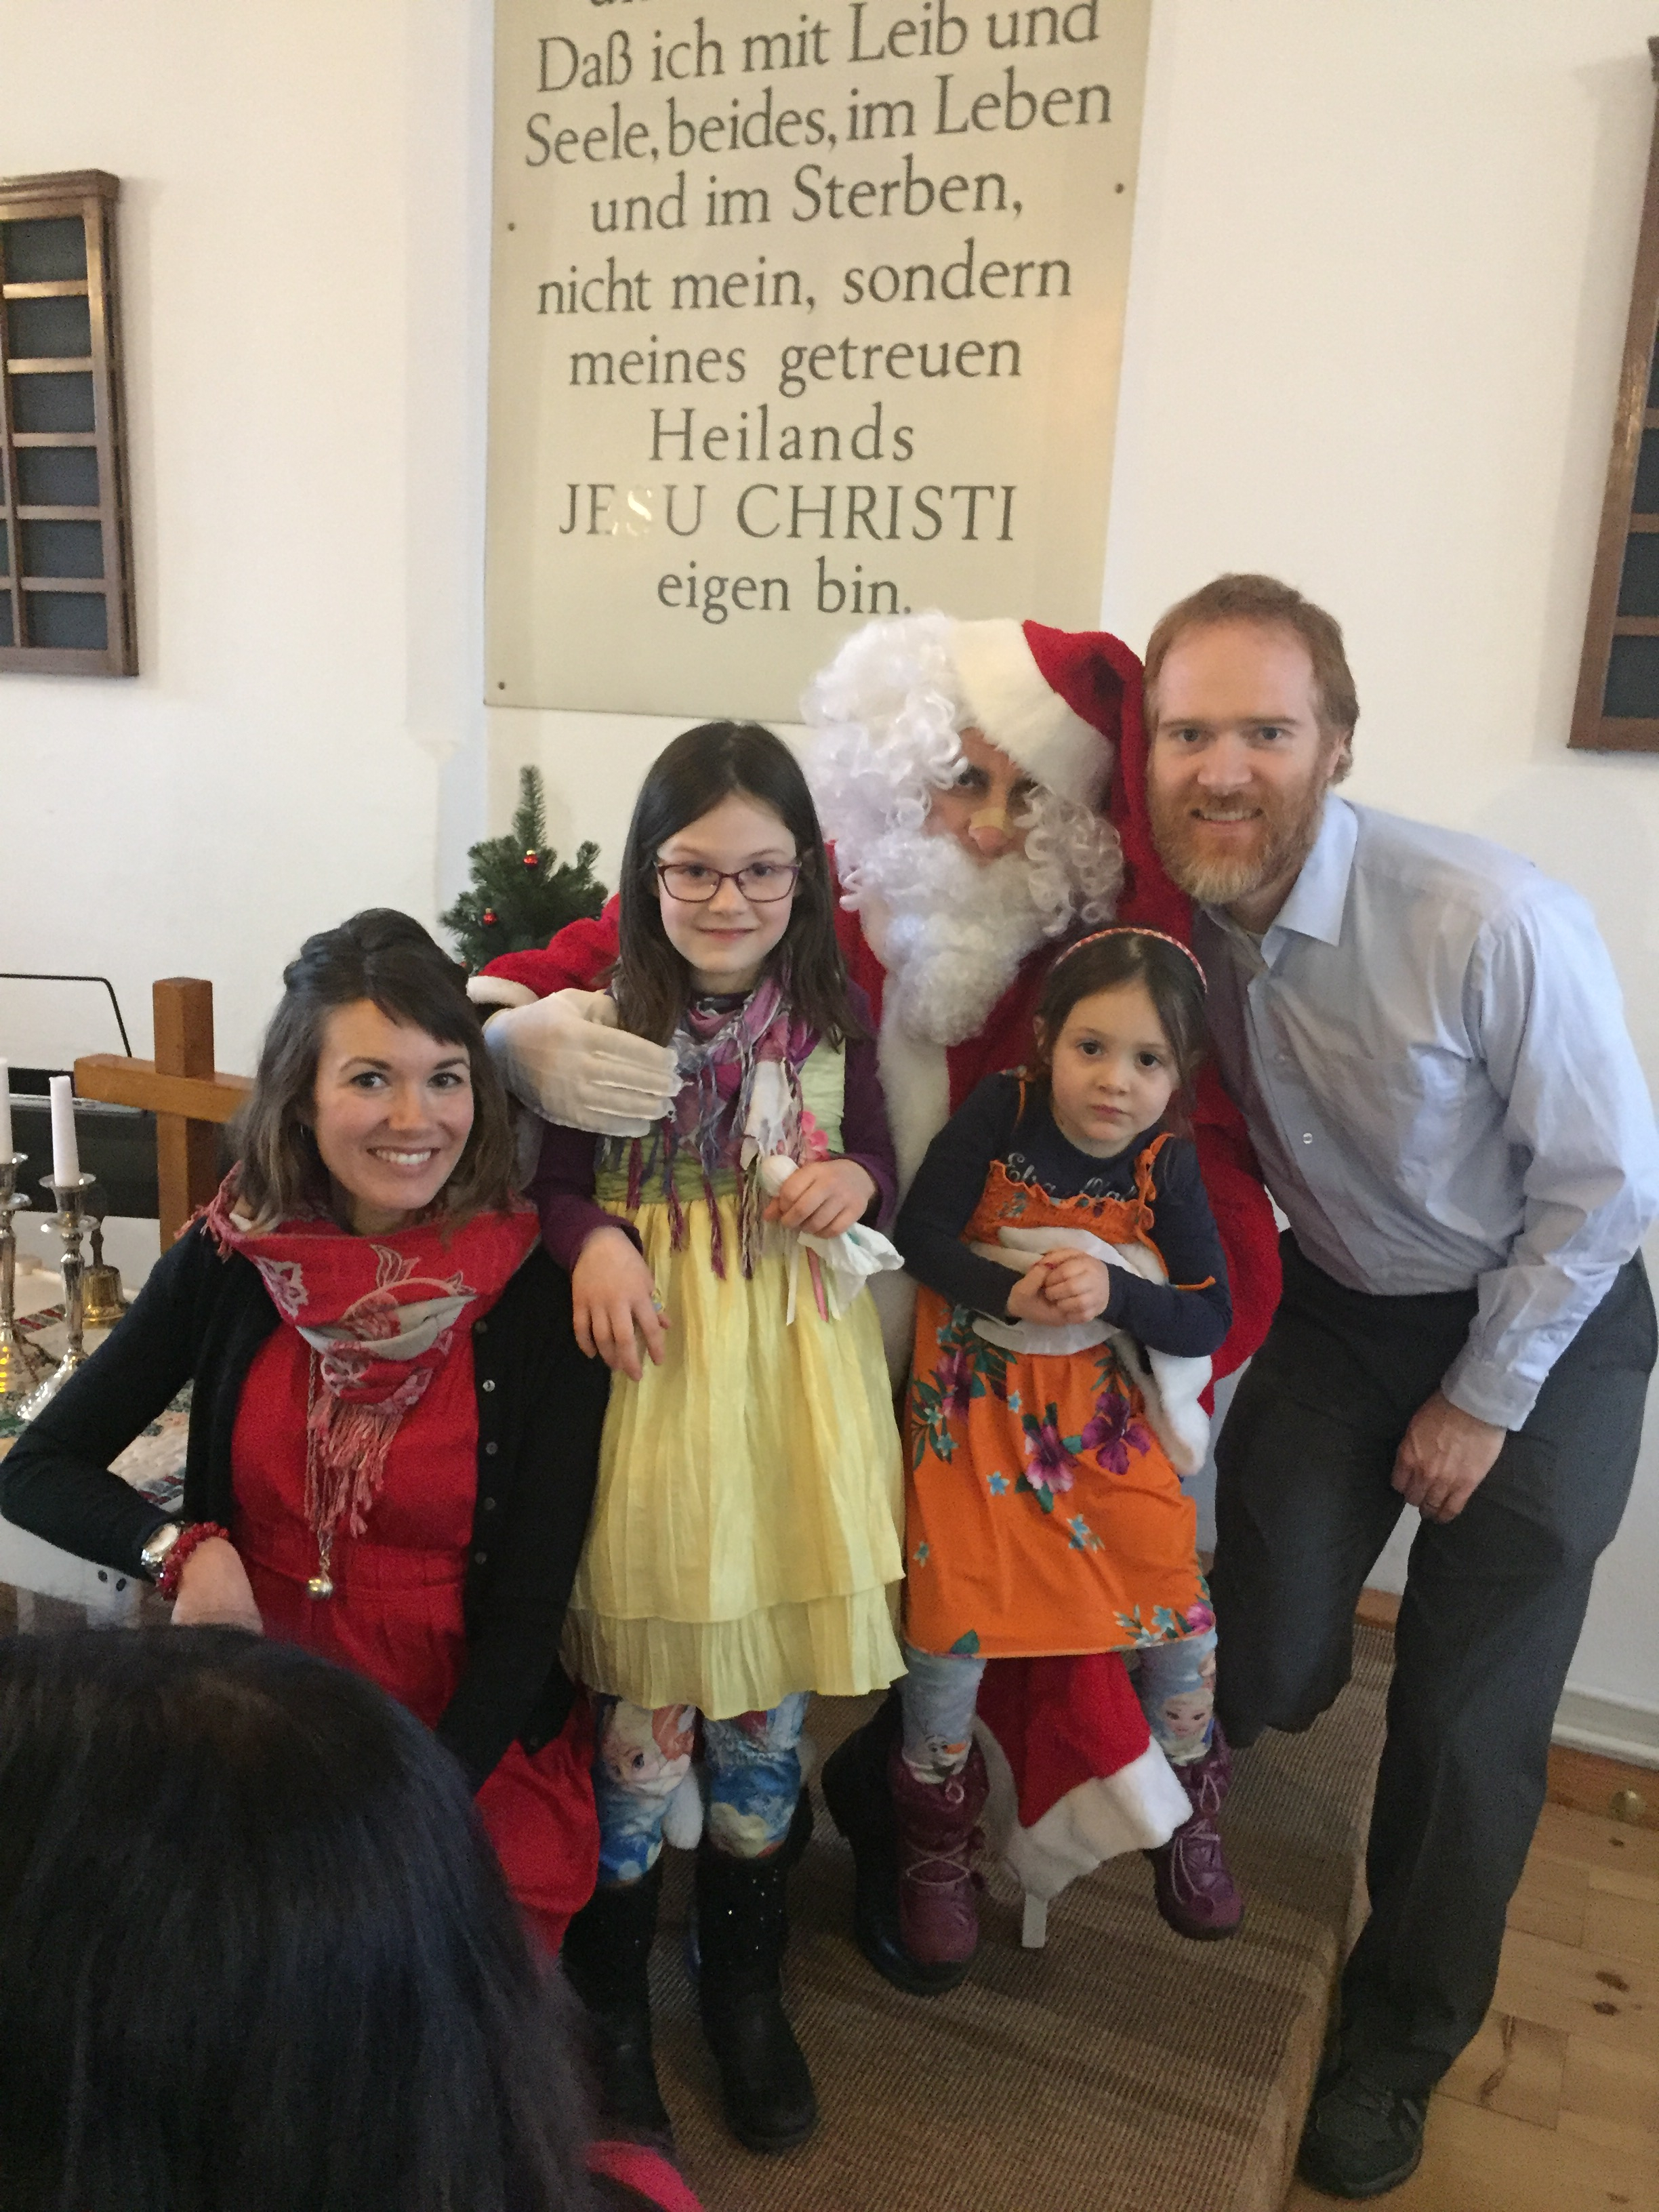 Advent and Christmas were a busy and joyful time for us and the church community. Here we are with Baba Noel, who handed out small gifts to the children and happily posed for pictures with everyone during the church's Christmas party.